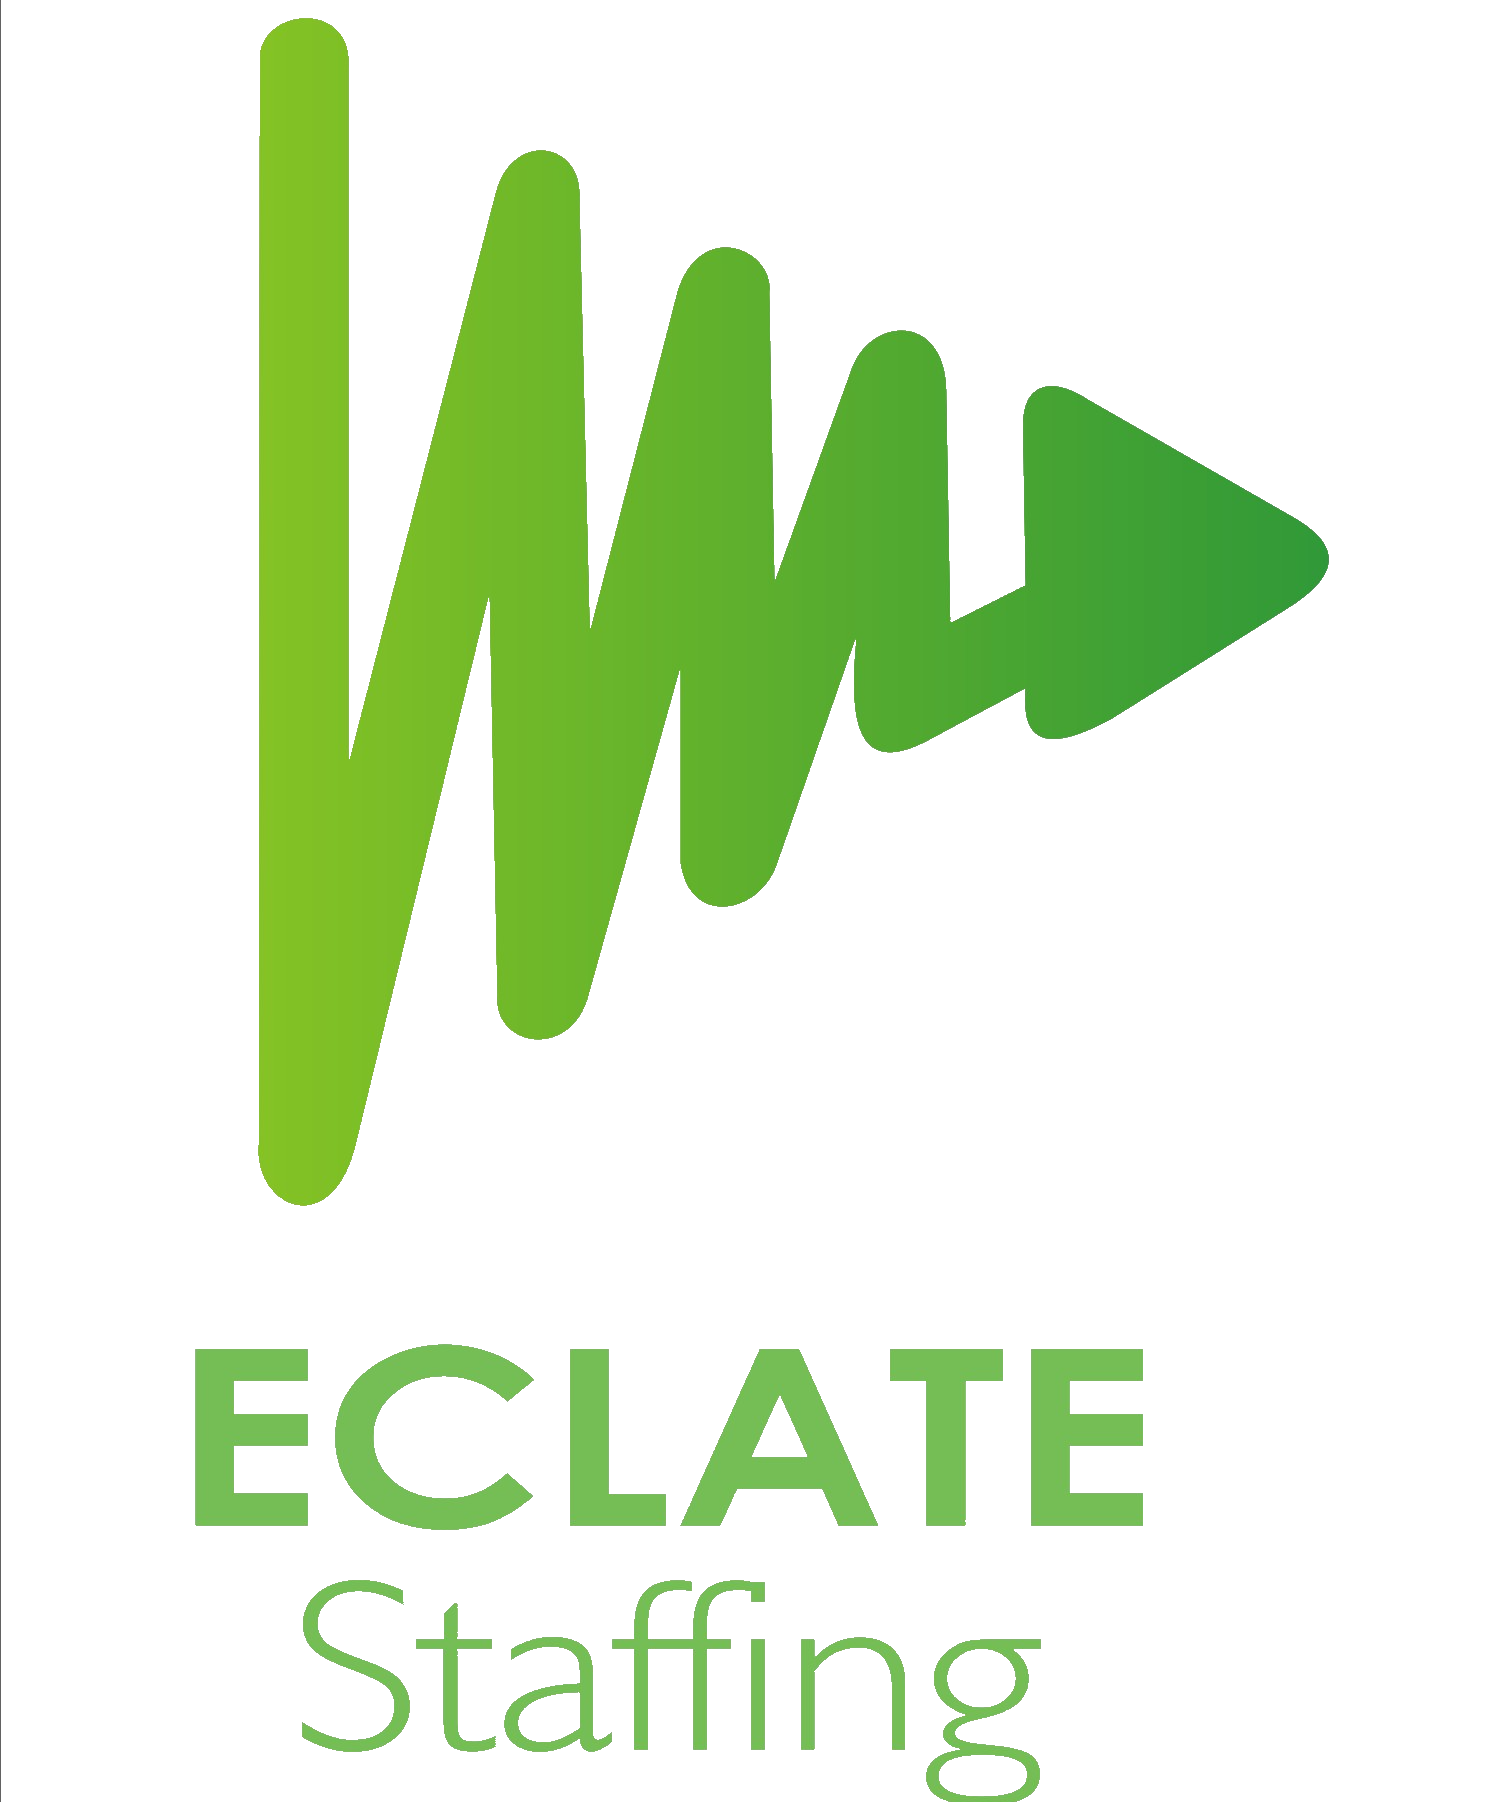 Eclate Staffing